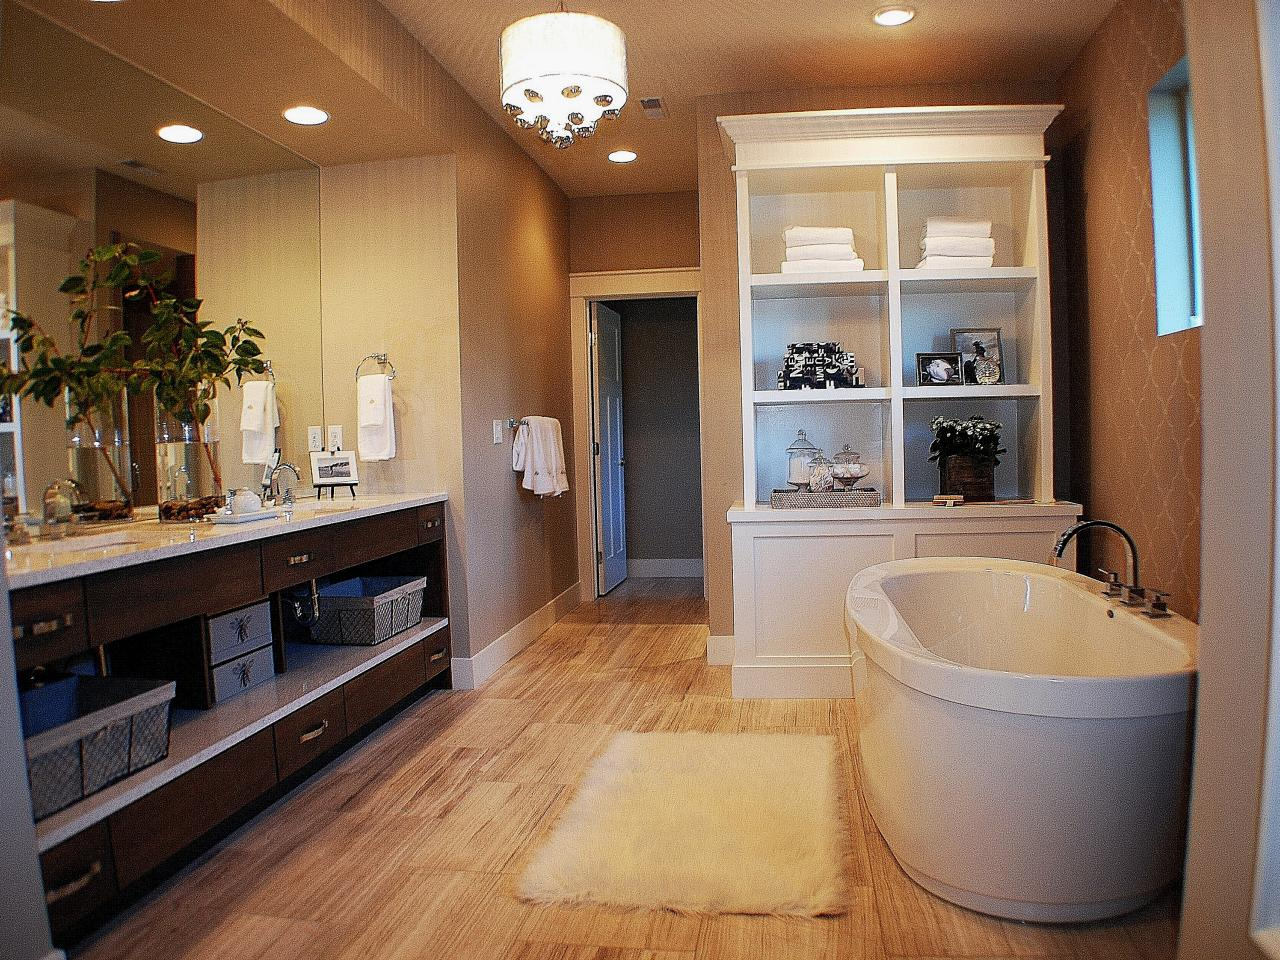 Bathroom Design Ideas And Tips: Bathroom Design Styles: Pictures, Ideas & Tips From HGTV